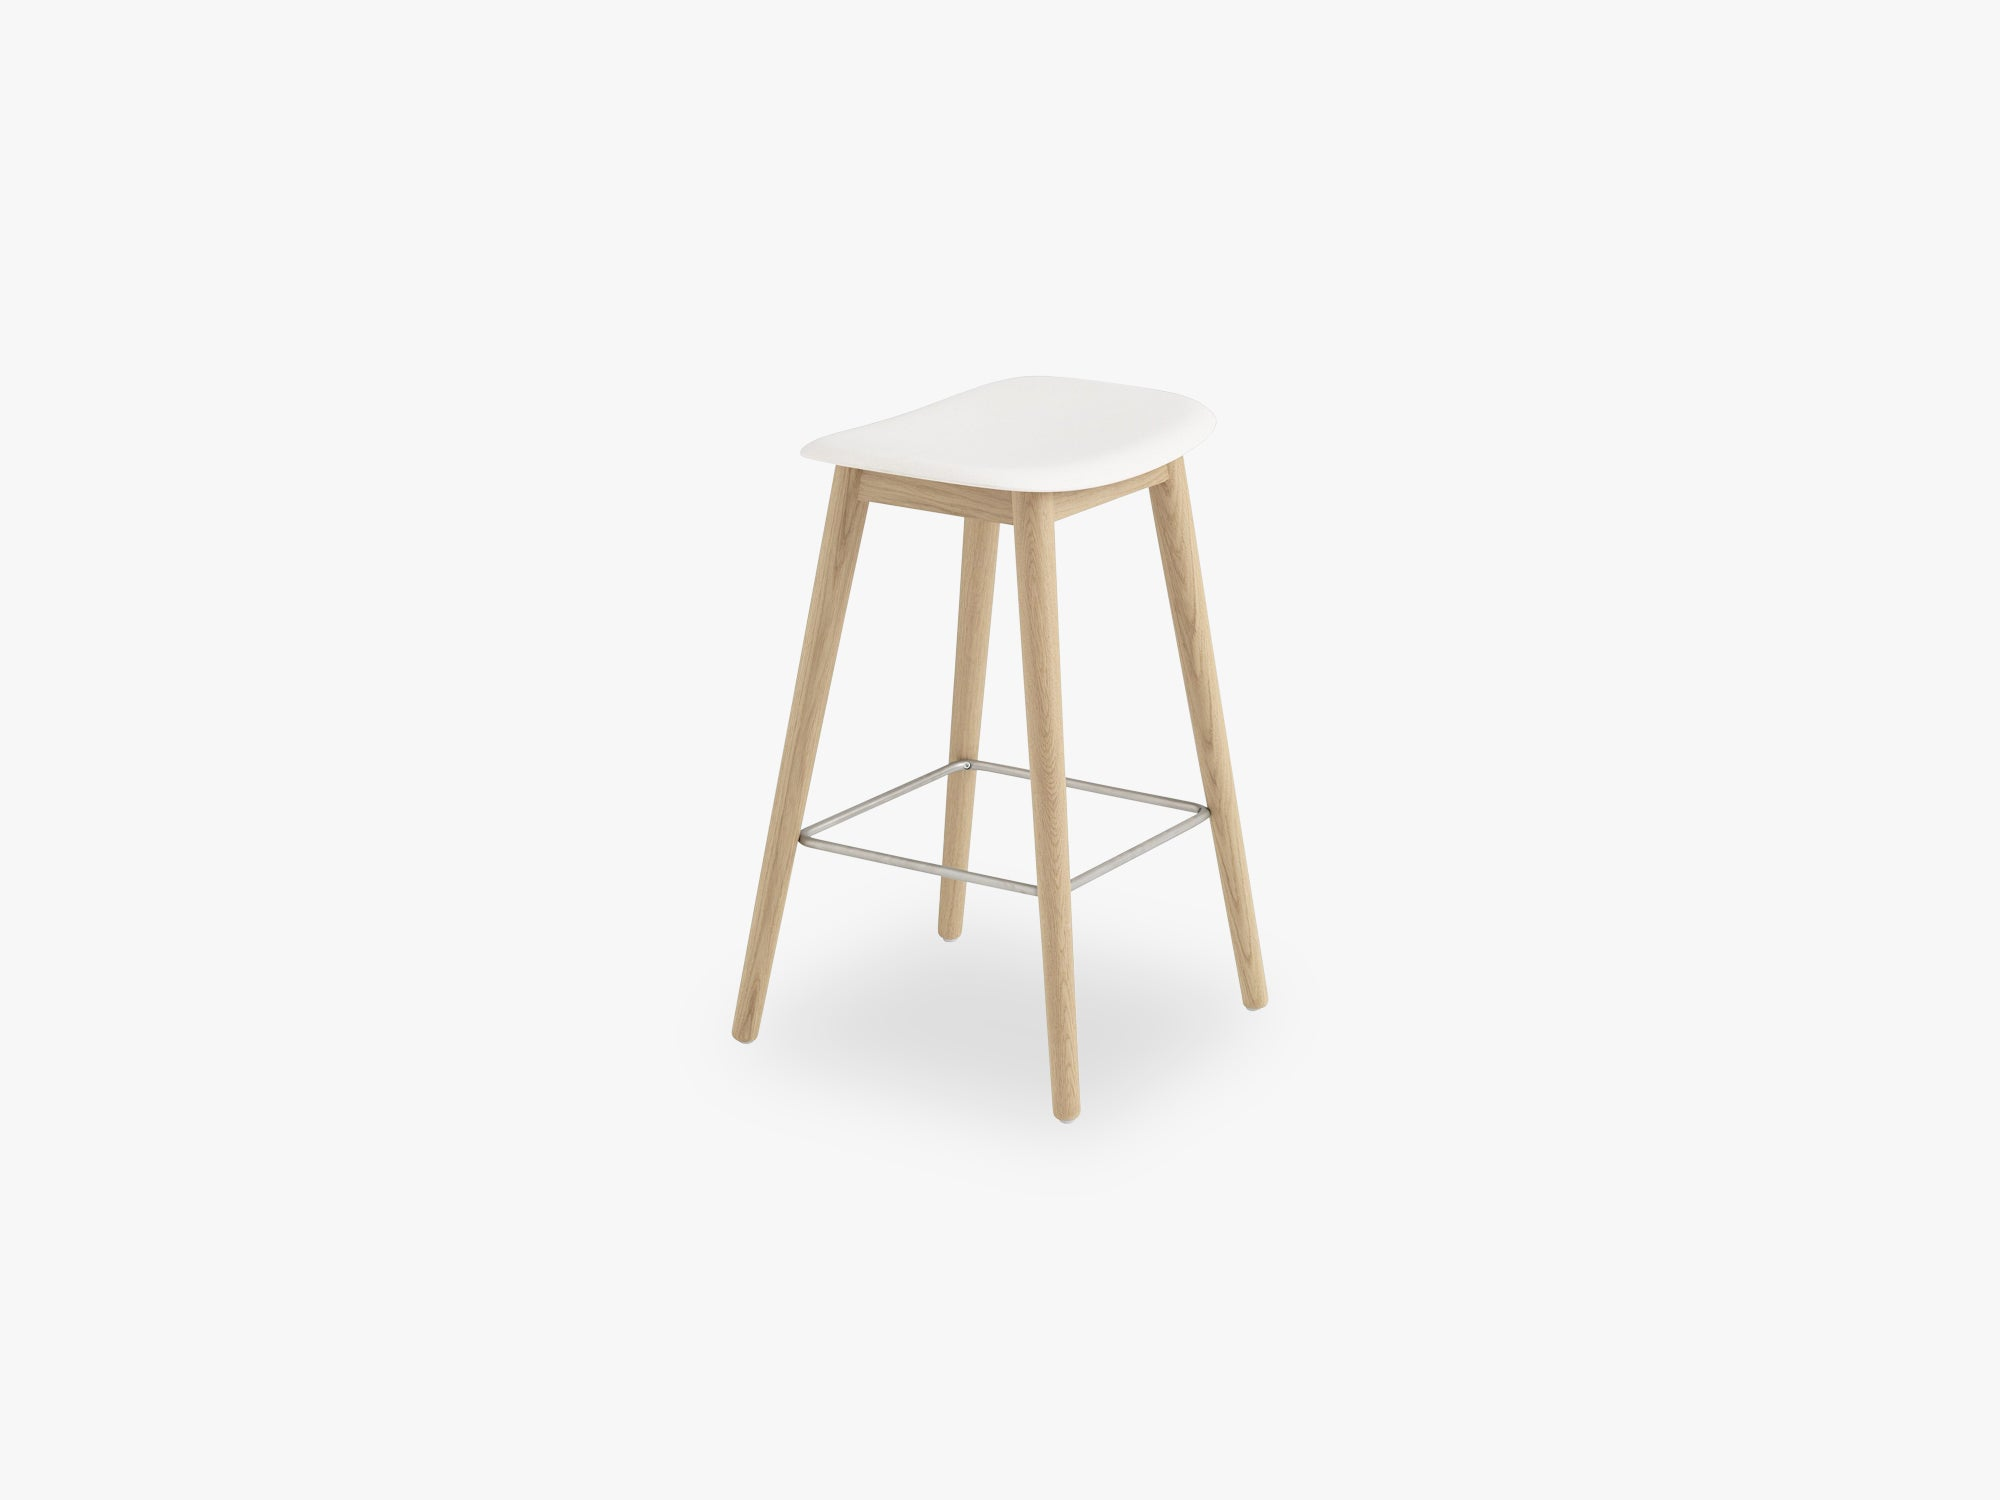 Fiber Bar Stool - Wood Base H: 65 Cm, Natural White/Oak fra Muuto